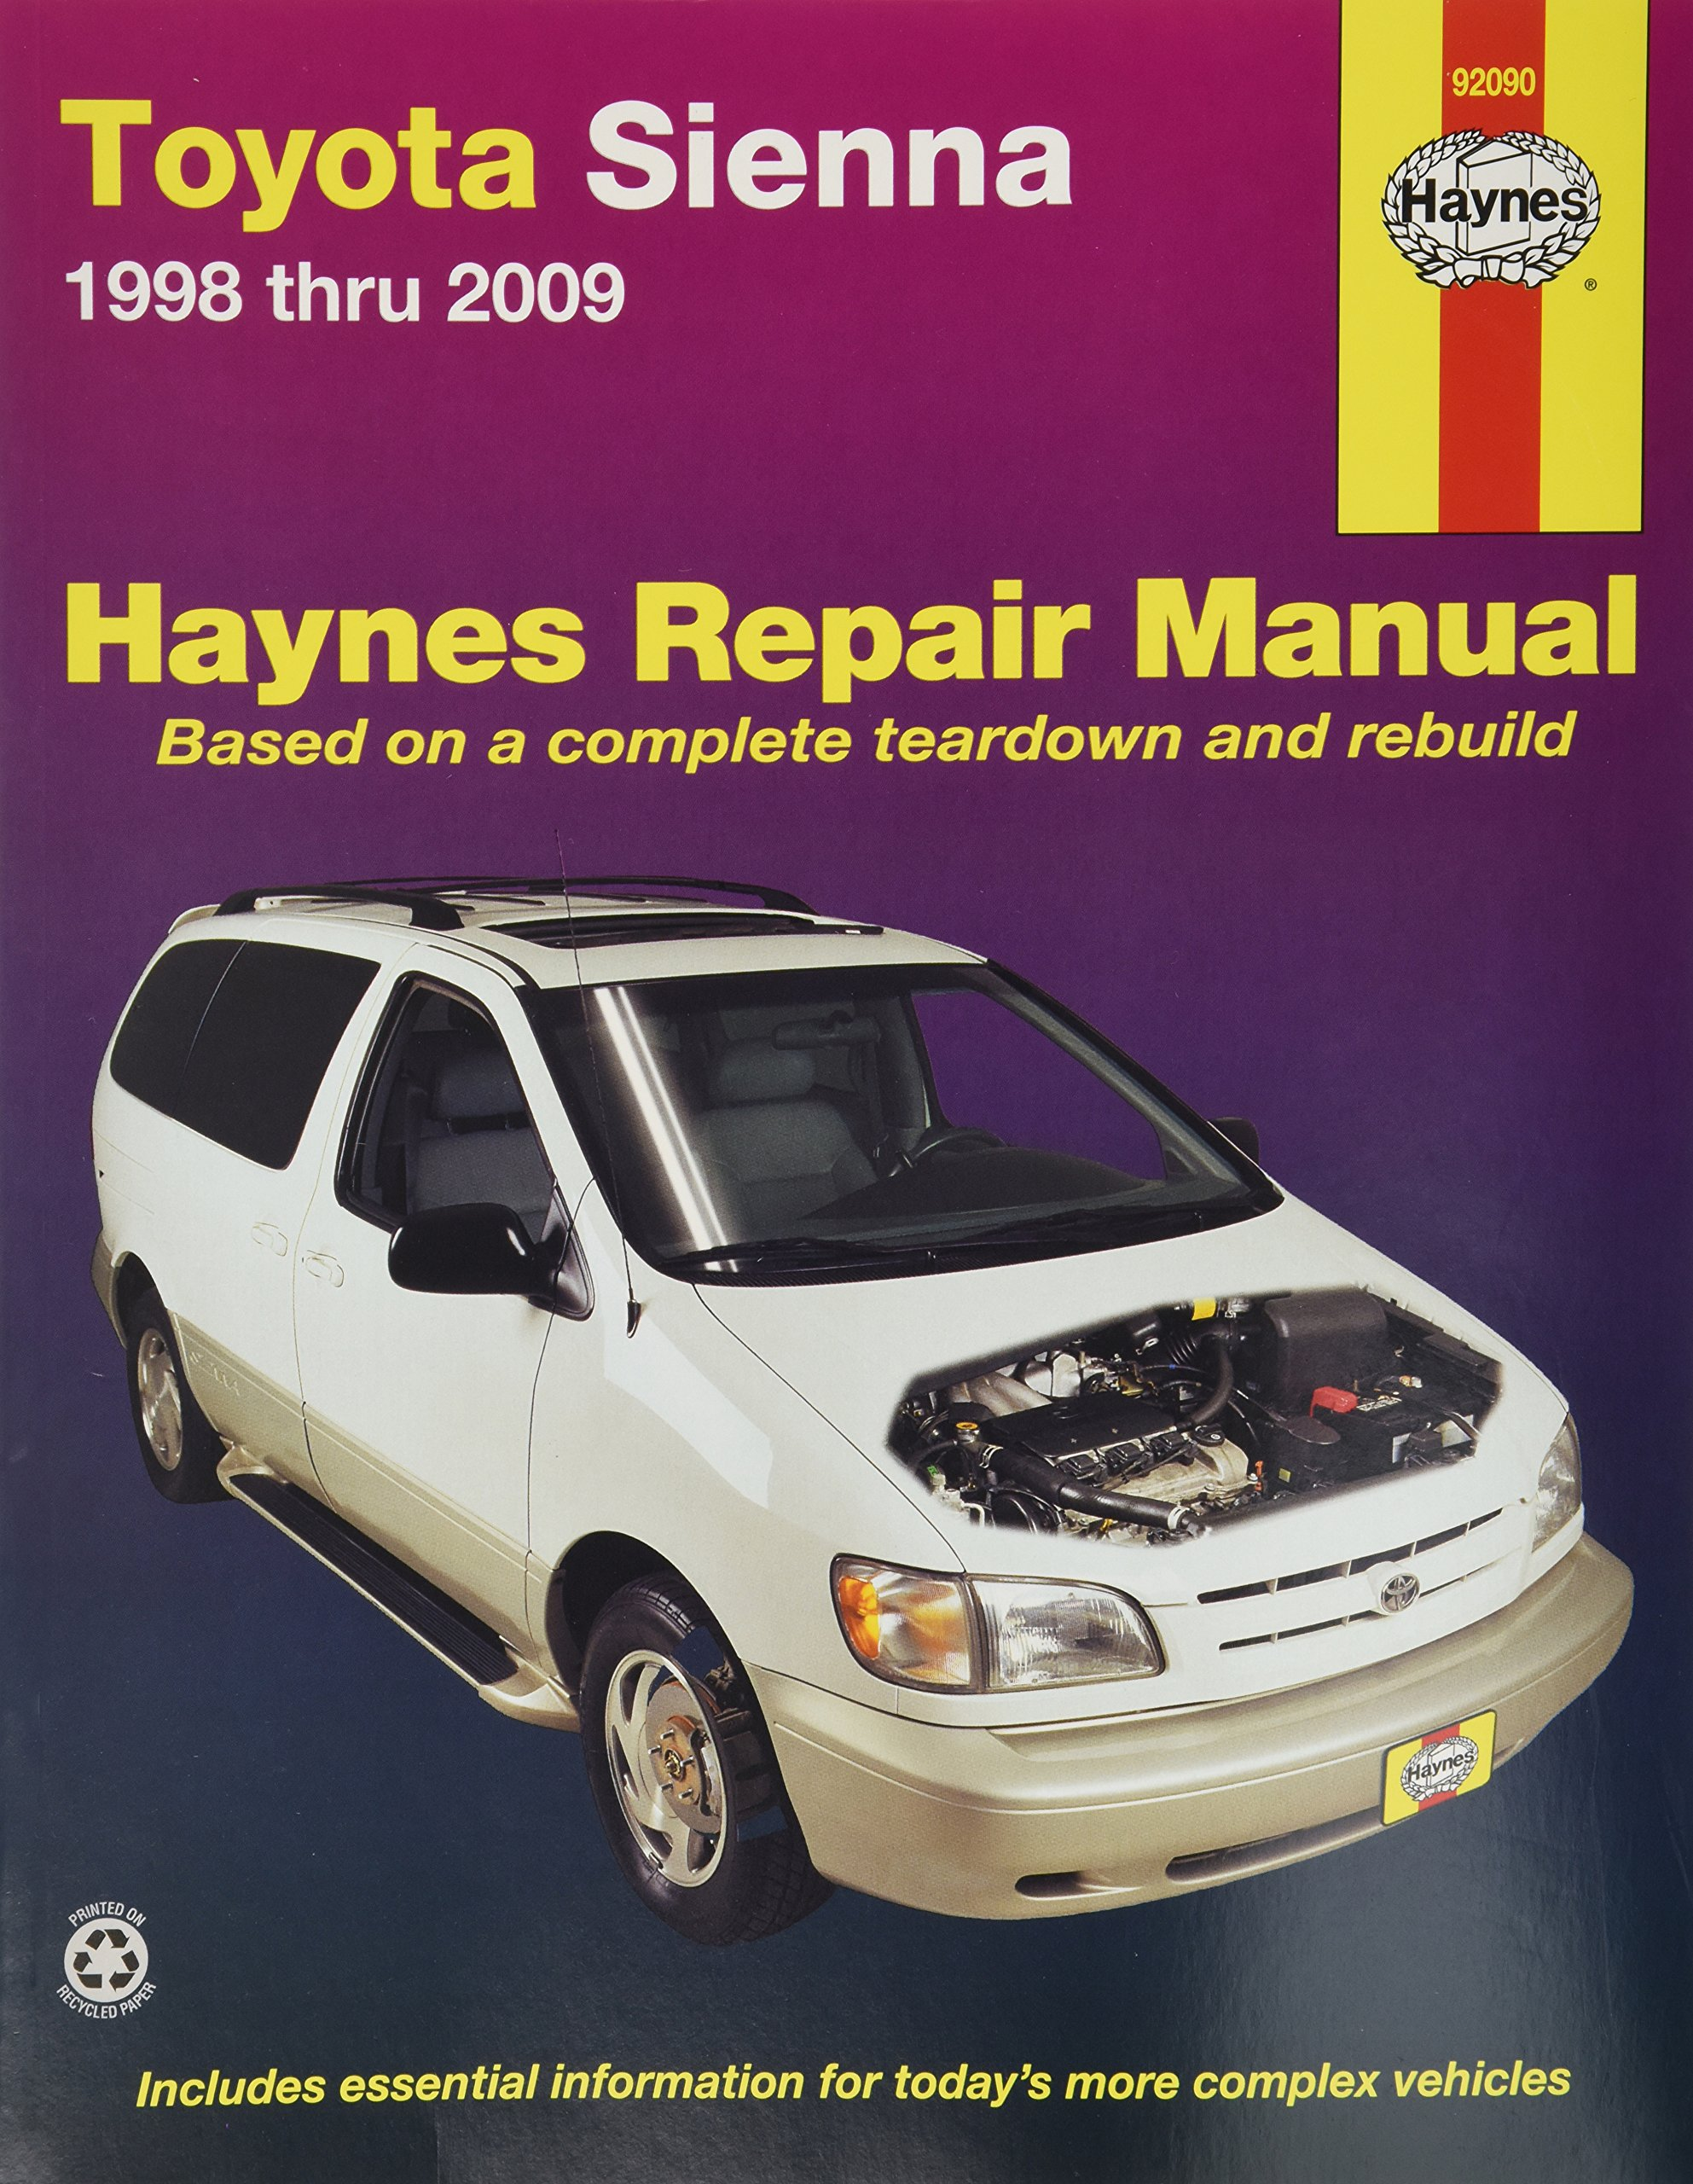 Get Quotations · Haynes Repair Manual for Toyota Sienna 1998 thru 2009  Number 92090